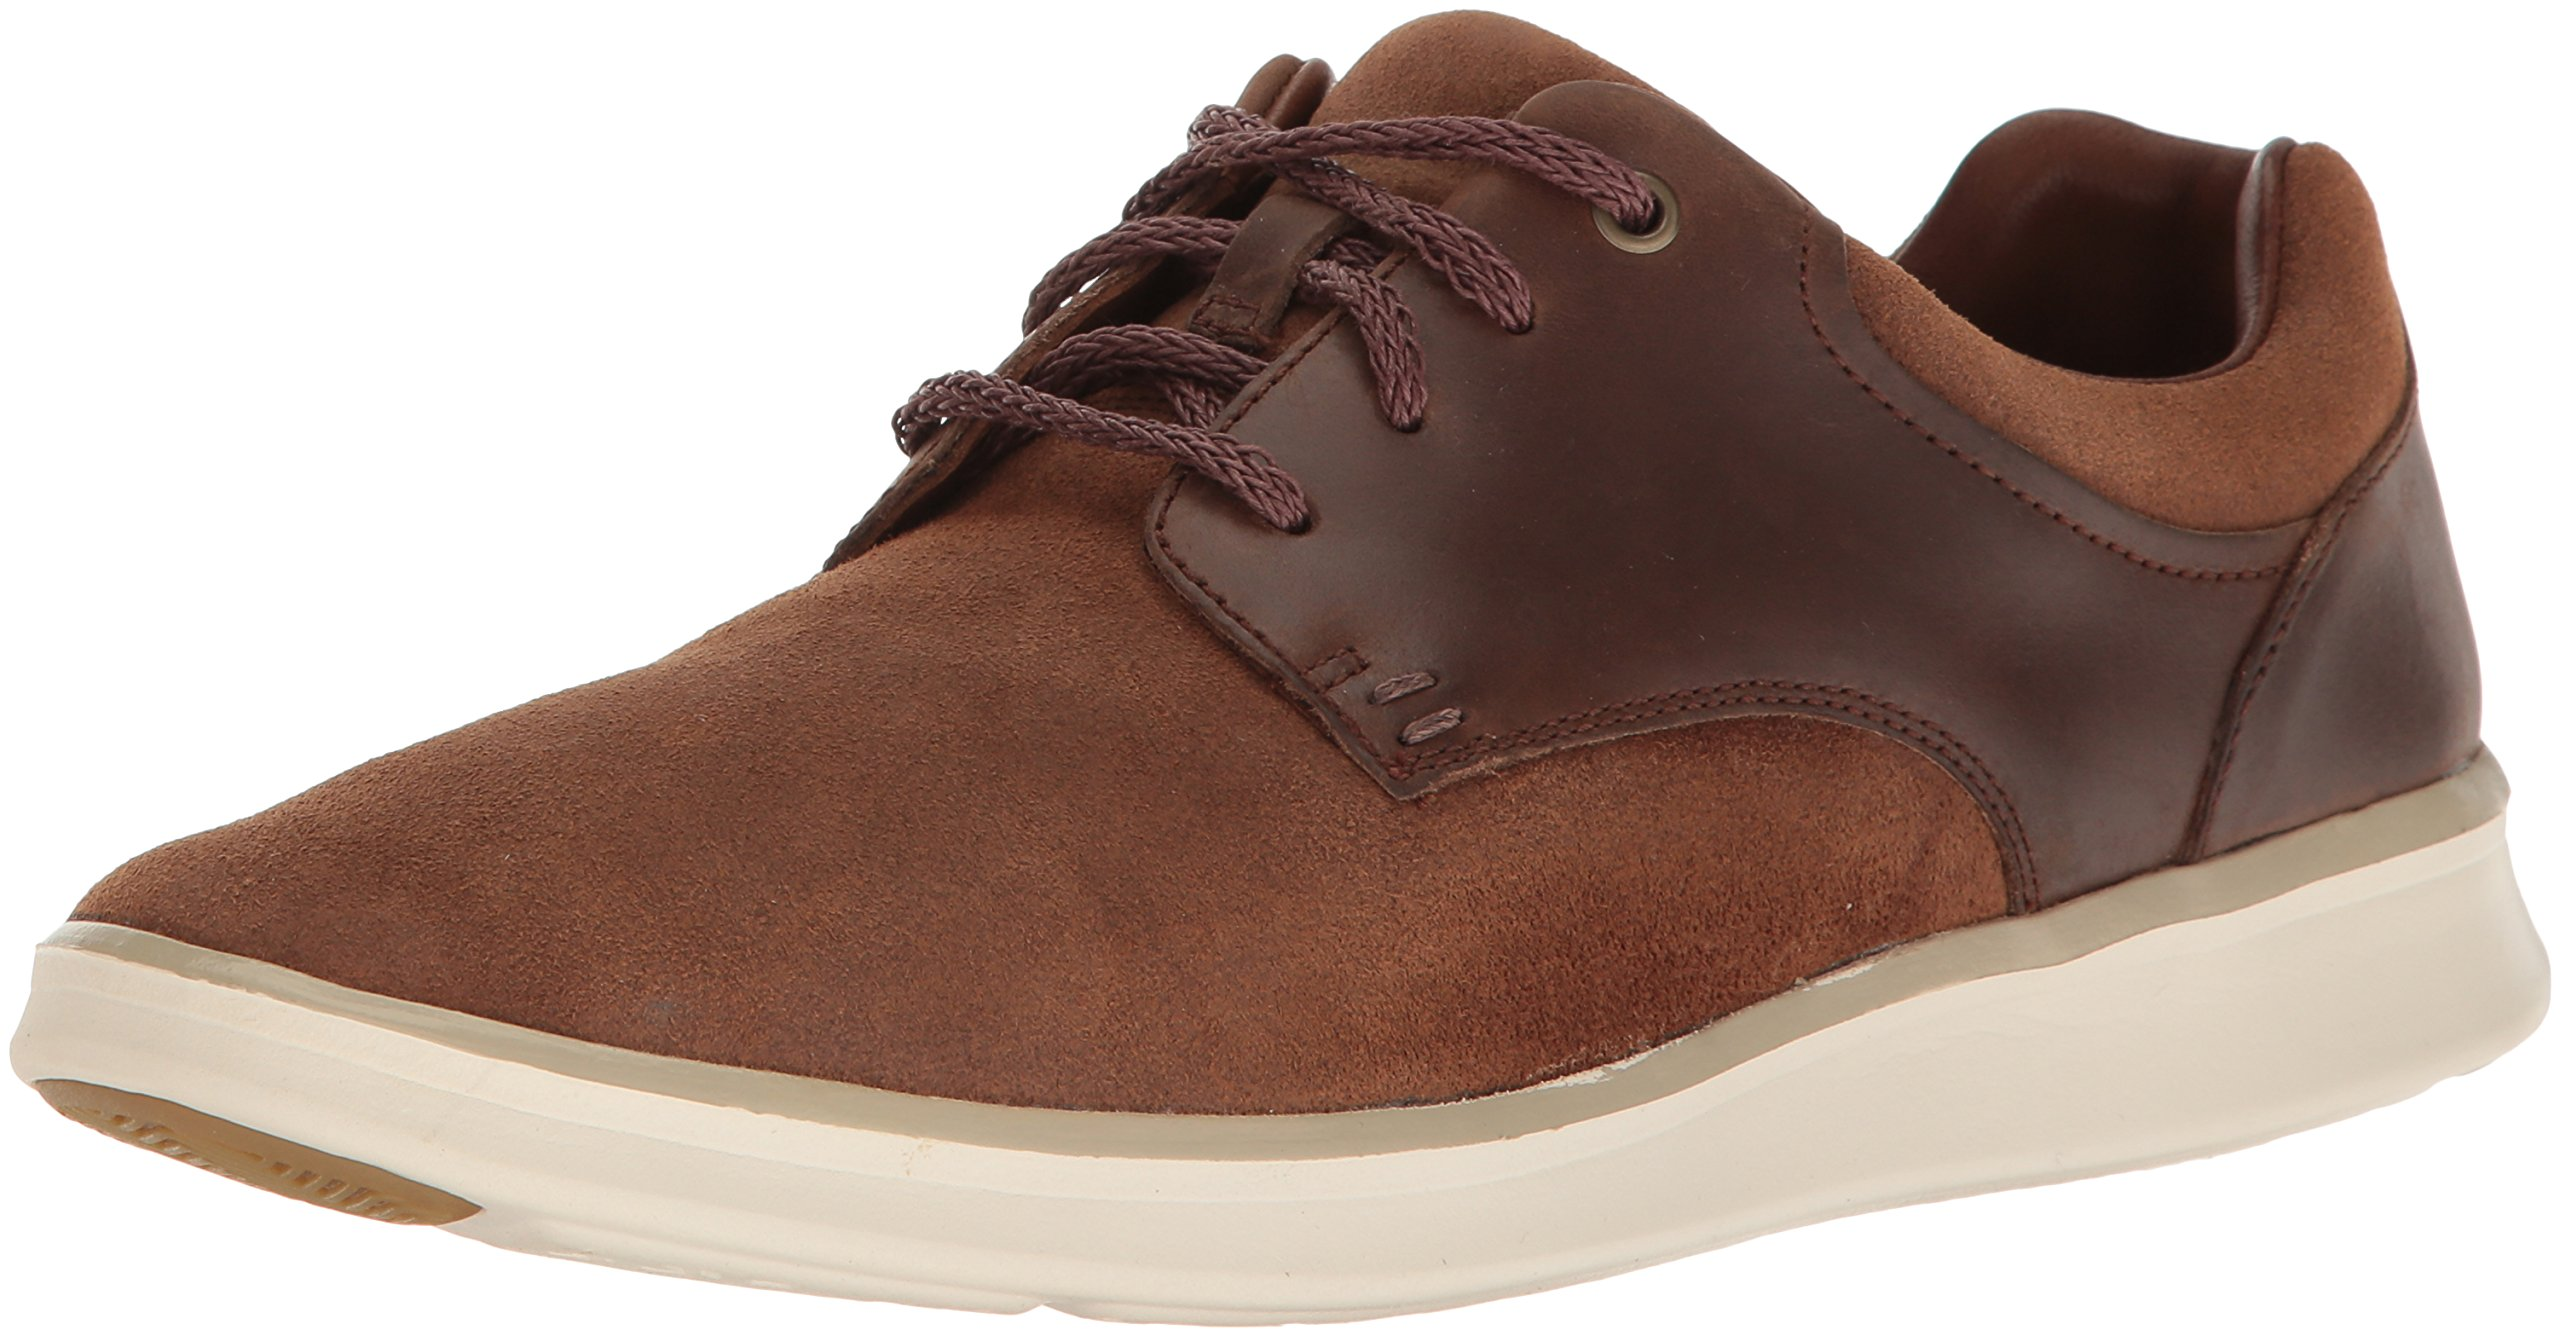 UGG Men's Hepner Fashion Sneaker Chestnut 11.5 M US